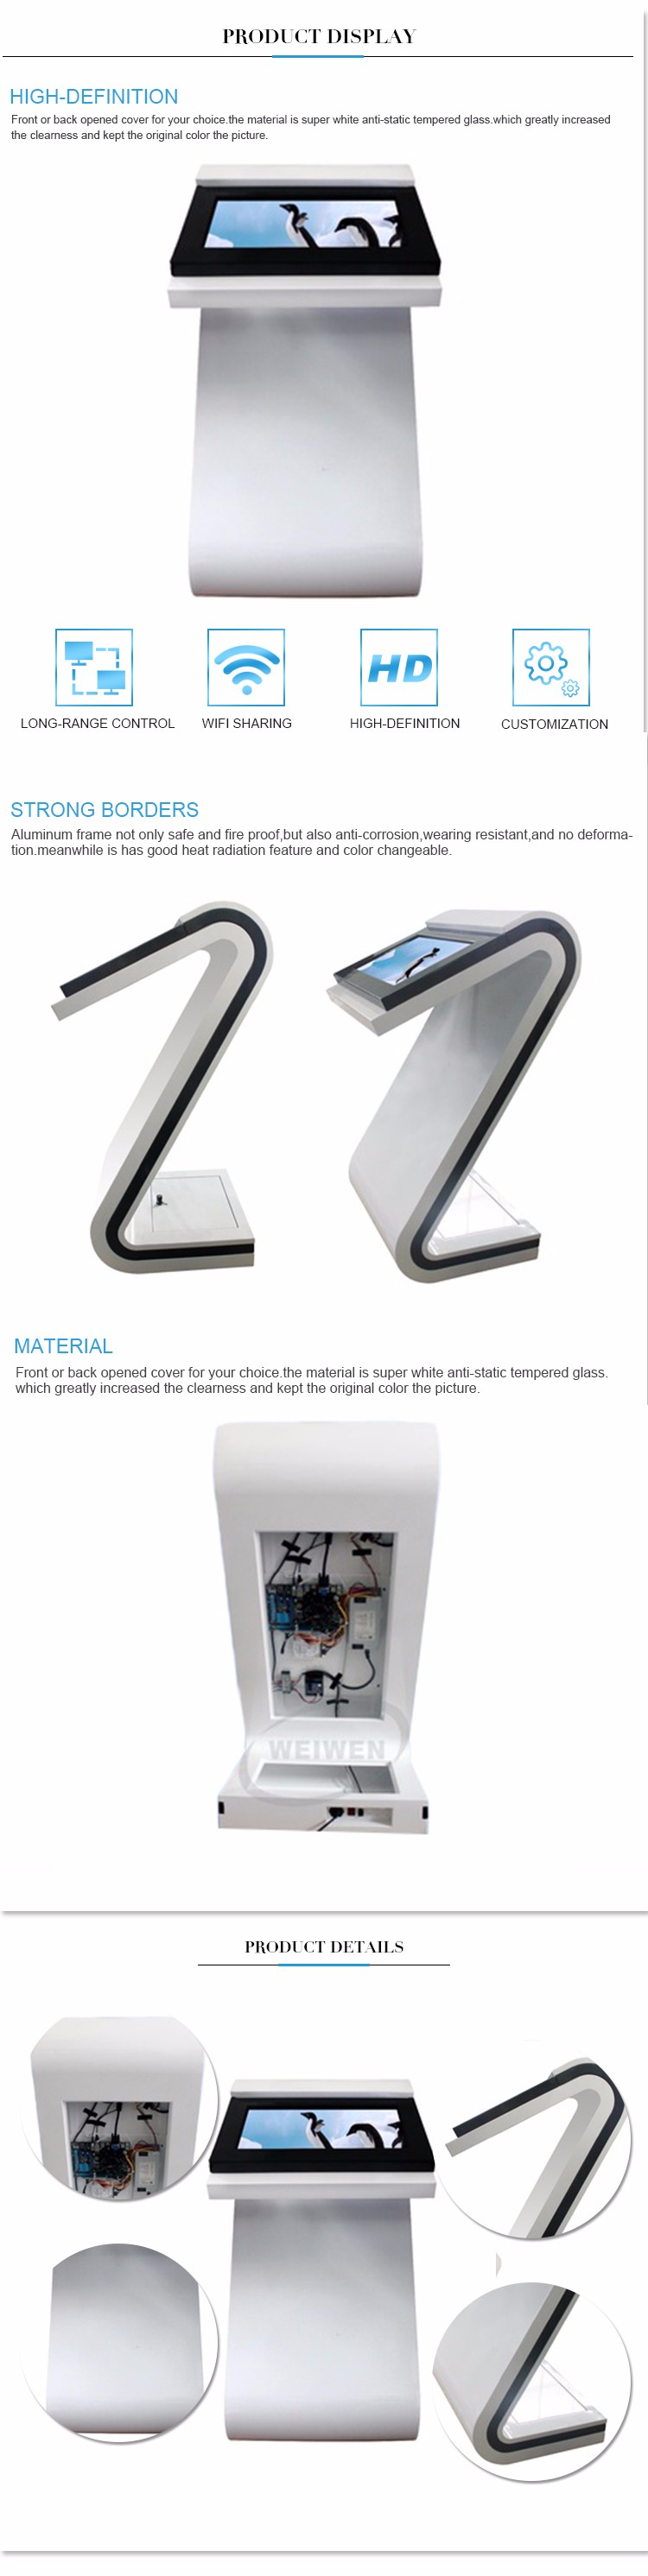 Network horizontal touch screen kiosk wifi advertising player for shopping mall